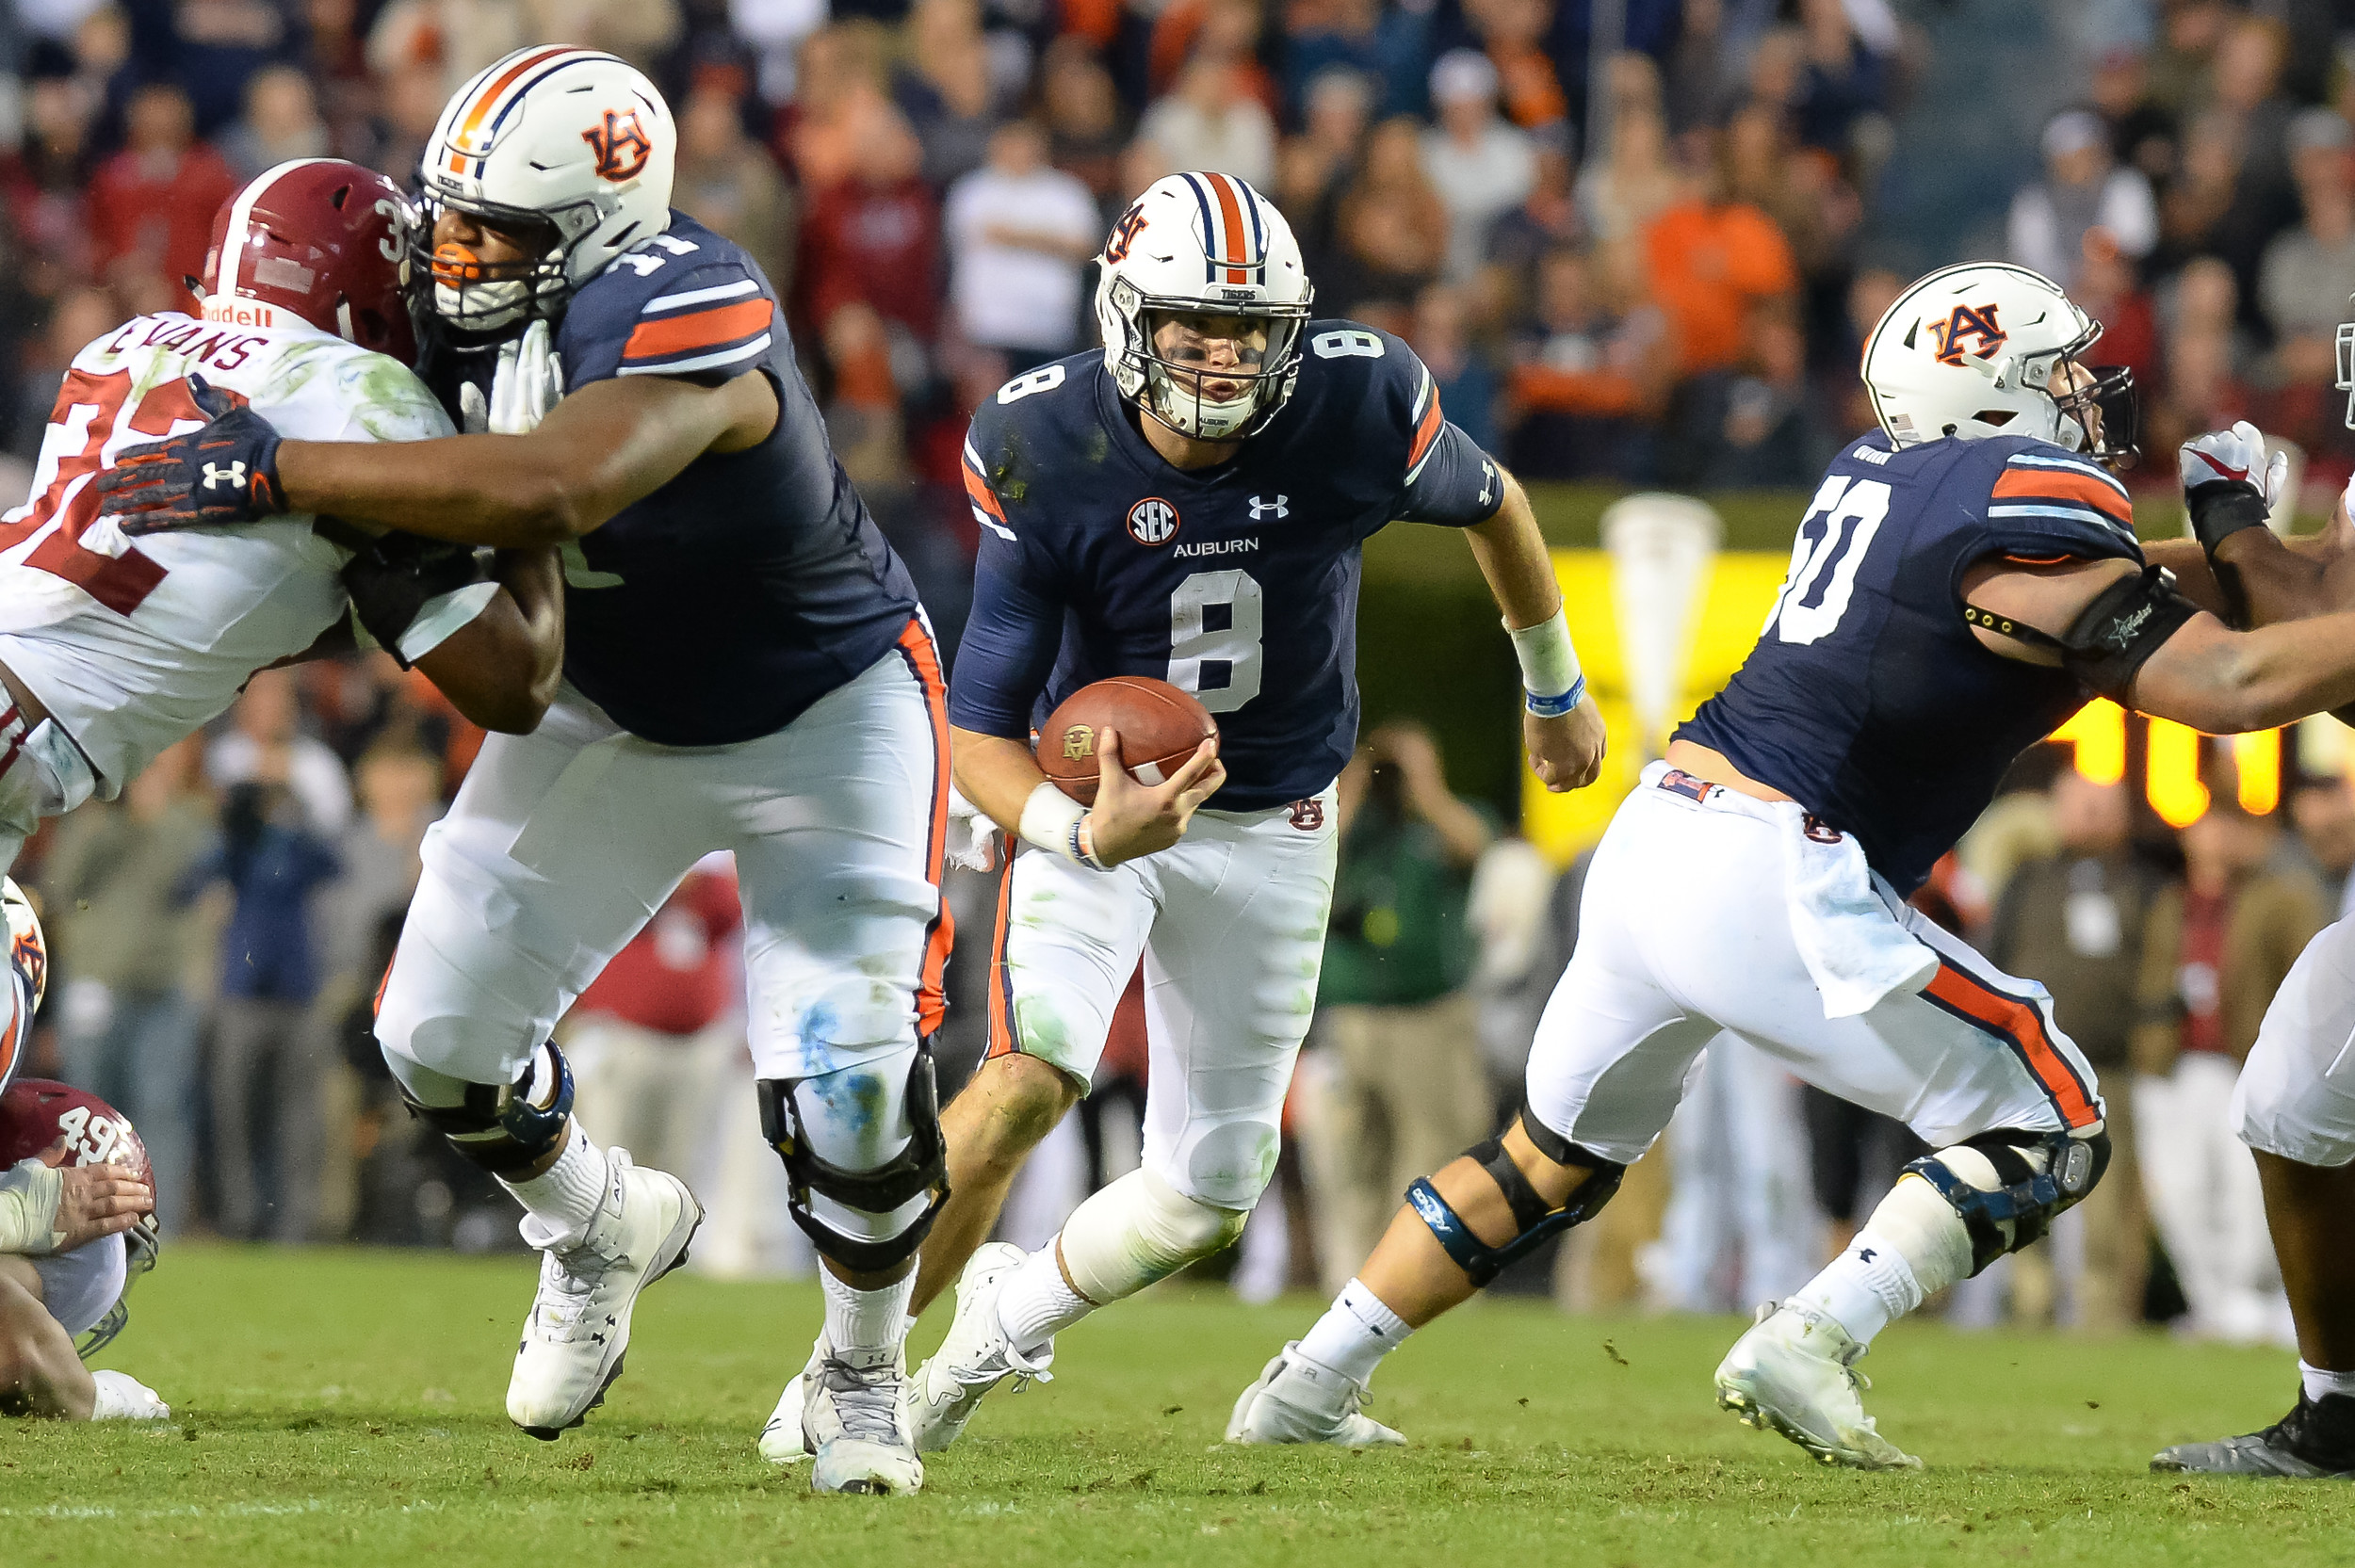 Auburn Tigers quarterback Jarrett Stidham (8) runs for yardage during the second half of Saturday's game, at Jordan-Hare Stadium.